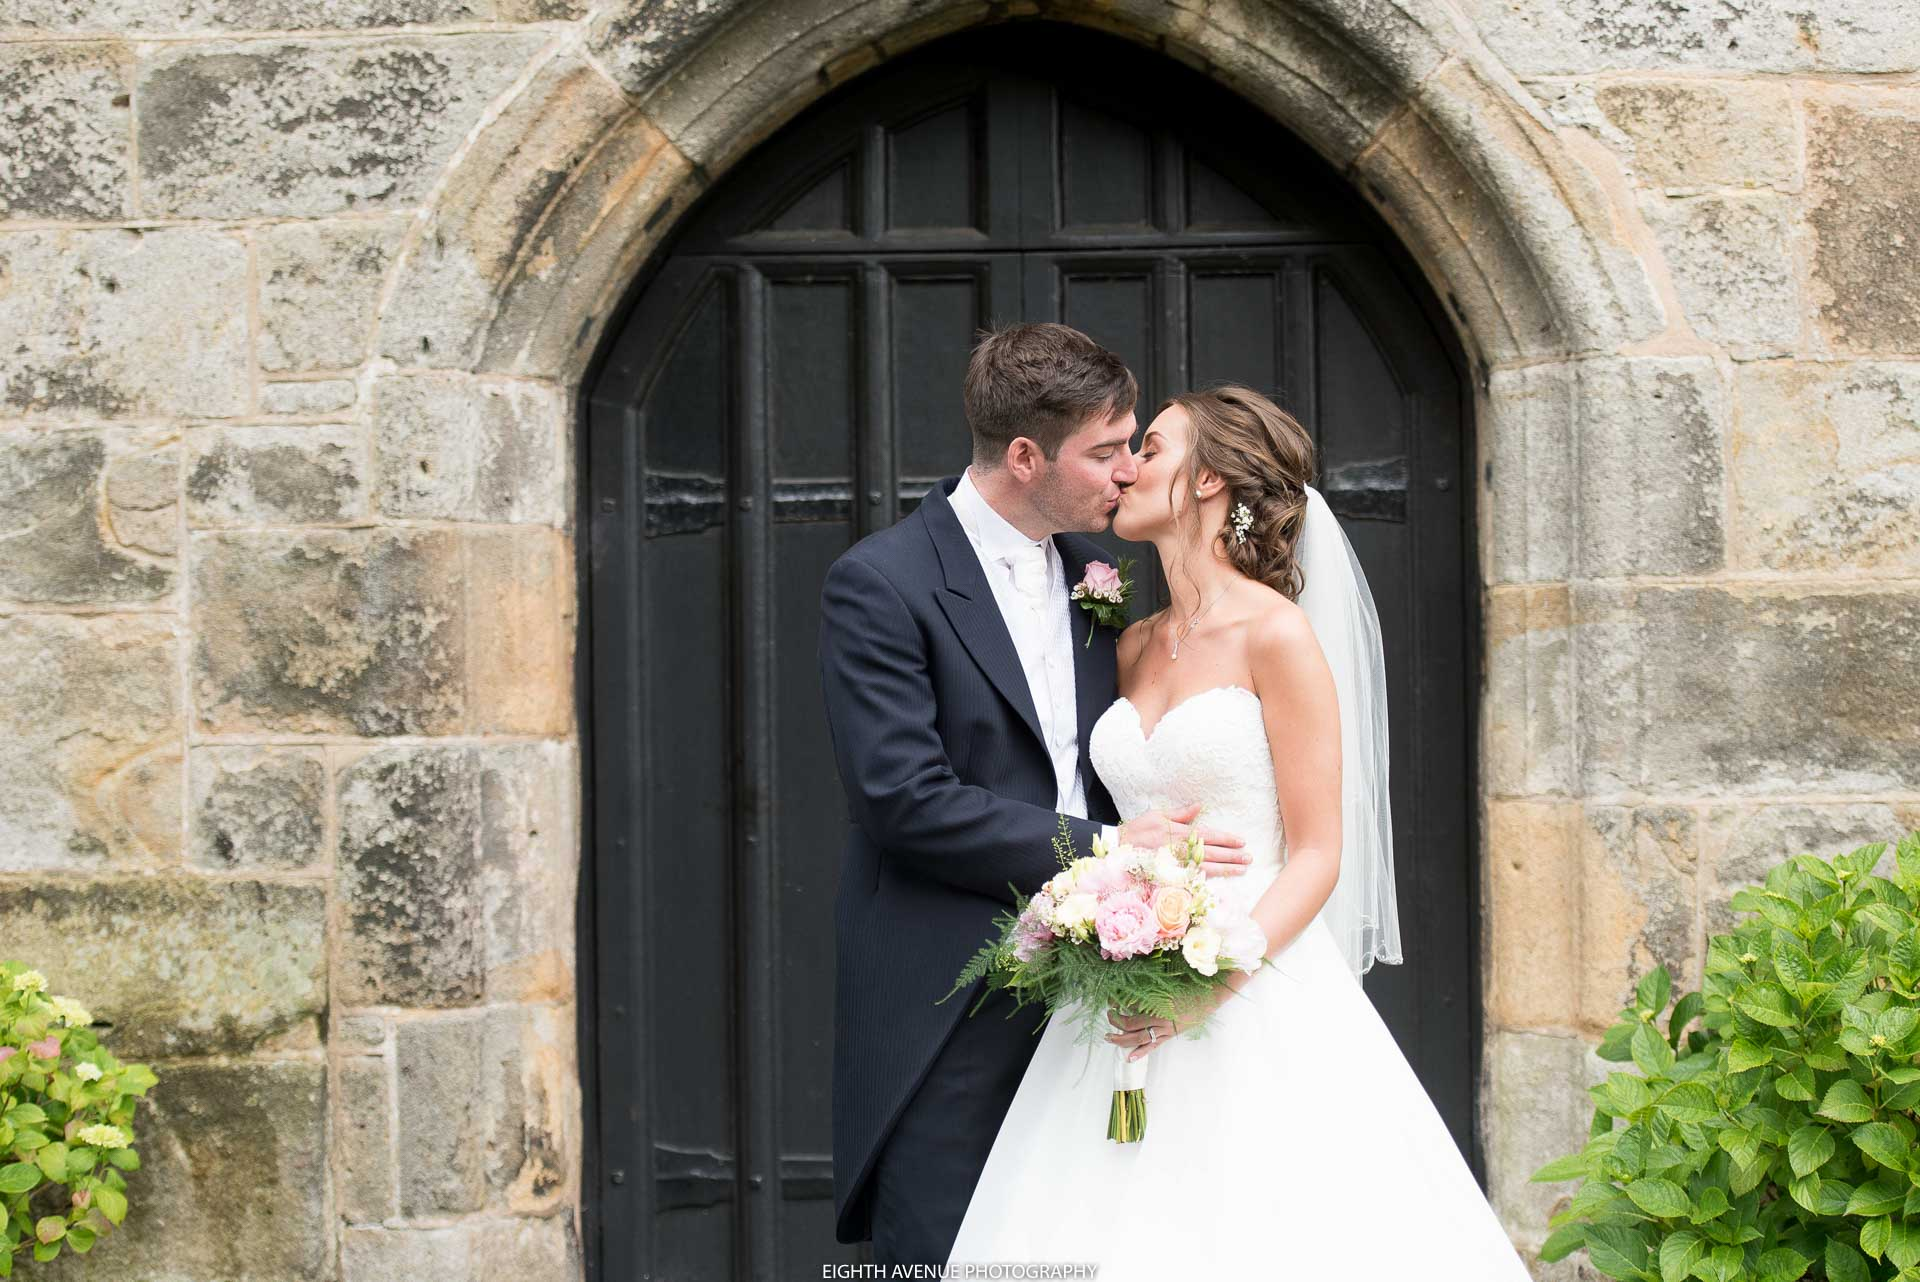 Bride and groom kissing outside wedding